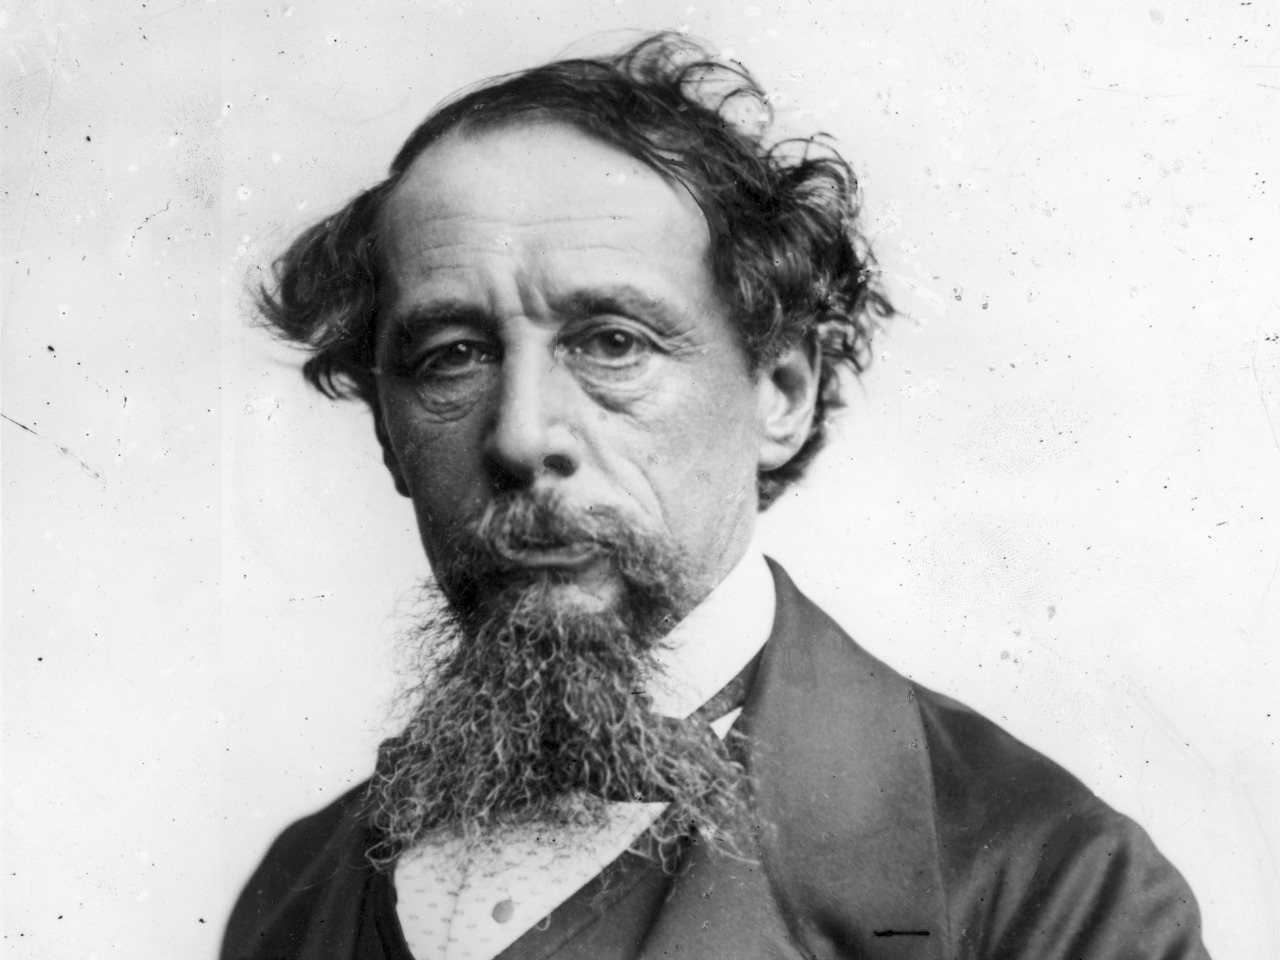 Charles Dickens, oliver twist, david copperfield, a christmas carol, feb 7, famous birthday, birthday, novel, novelist, english novelist, News for kids, great expectations, a tale of two cities, dombey and son, newsmobile india, NewsMobile